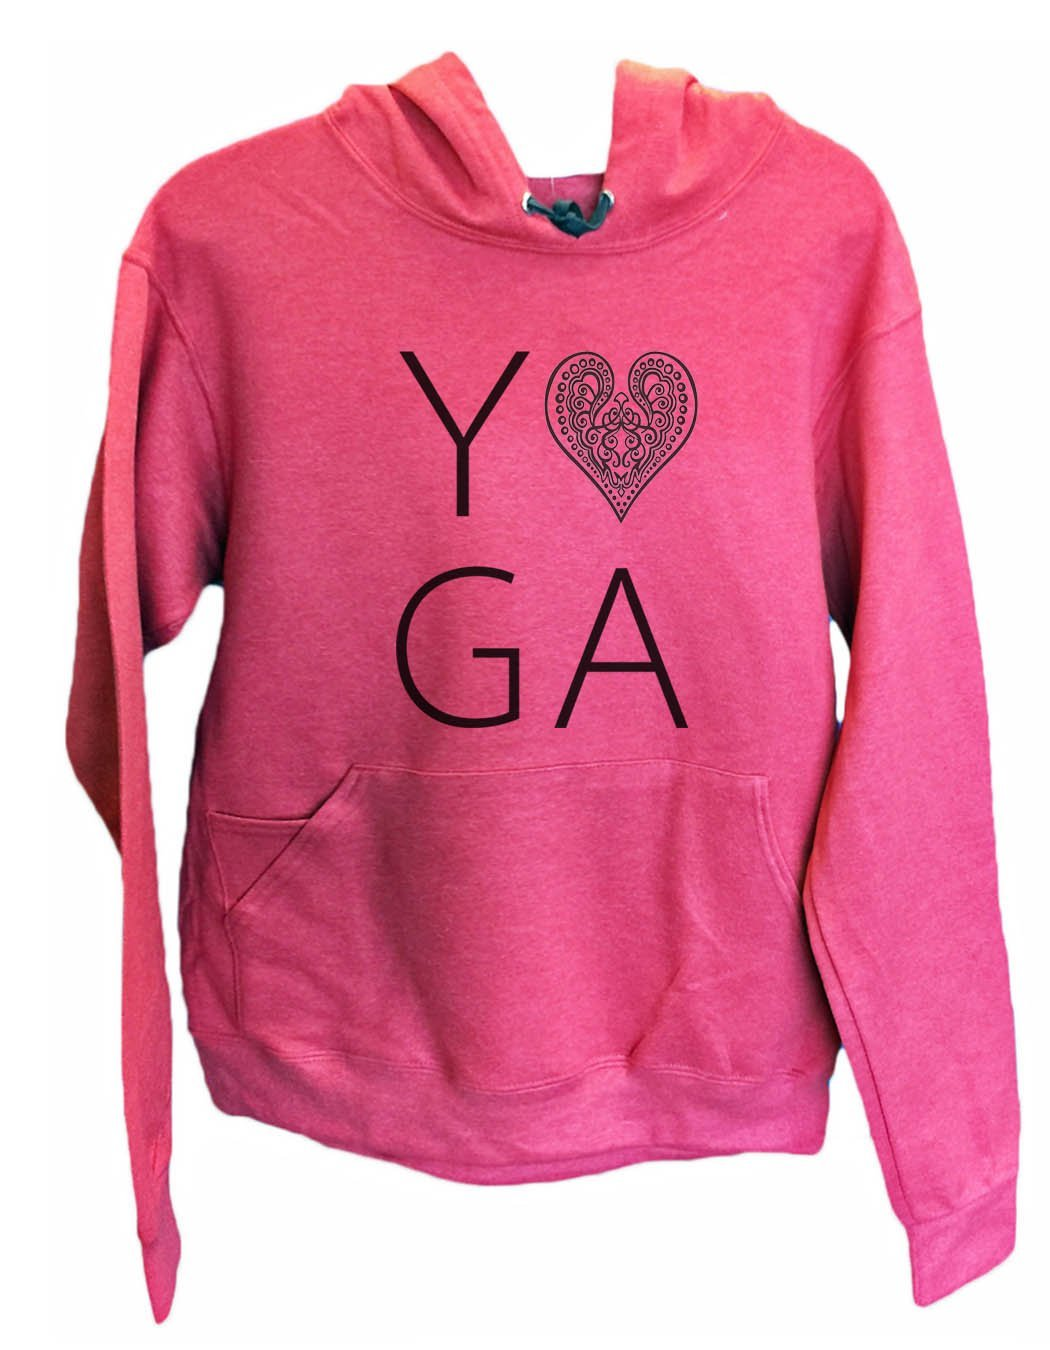 UNISEX HOODIE - Heart I Love Yoga - FUNNY MENS AND WOMENS HOODED SWEATSHIRTS - 2183 Funny Shirt Small / Cranberry Red